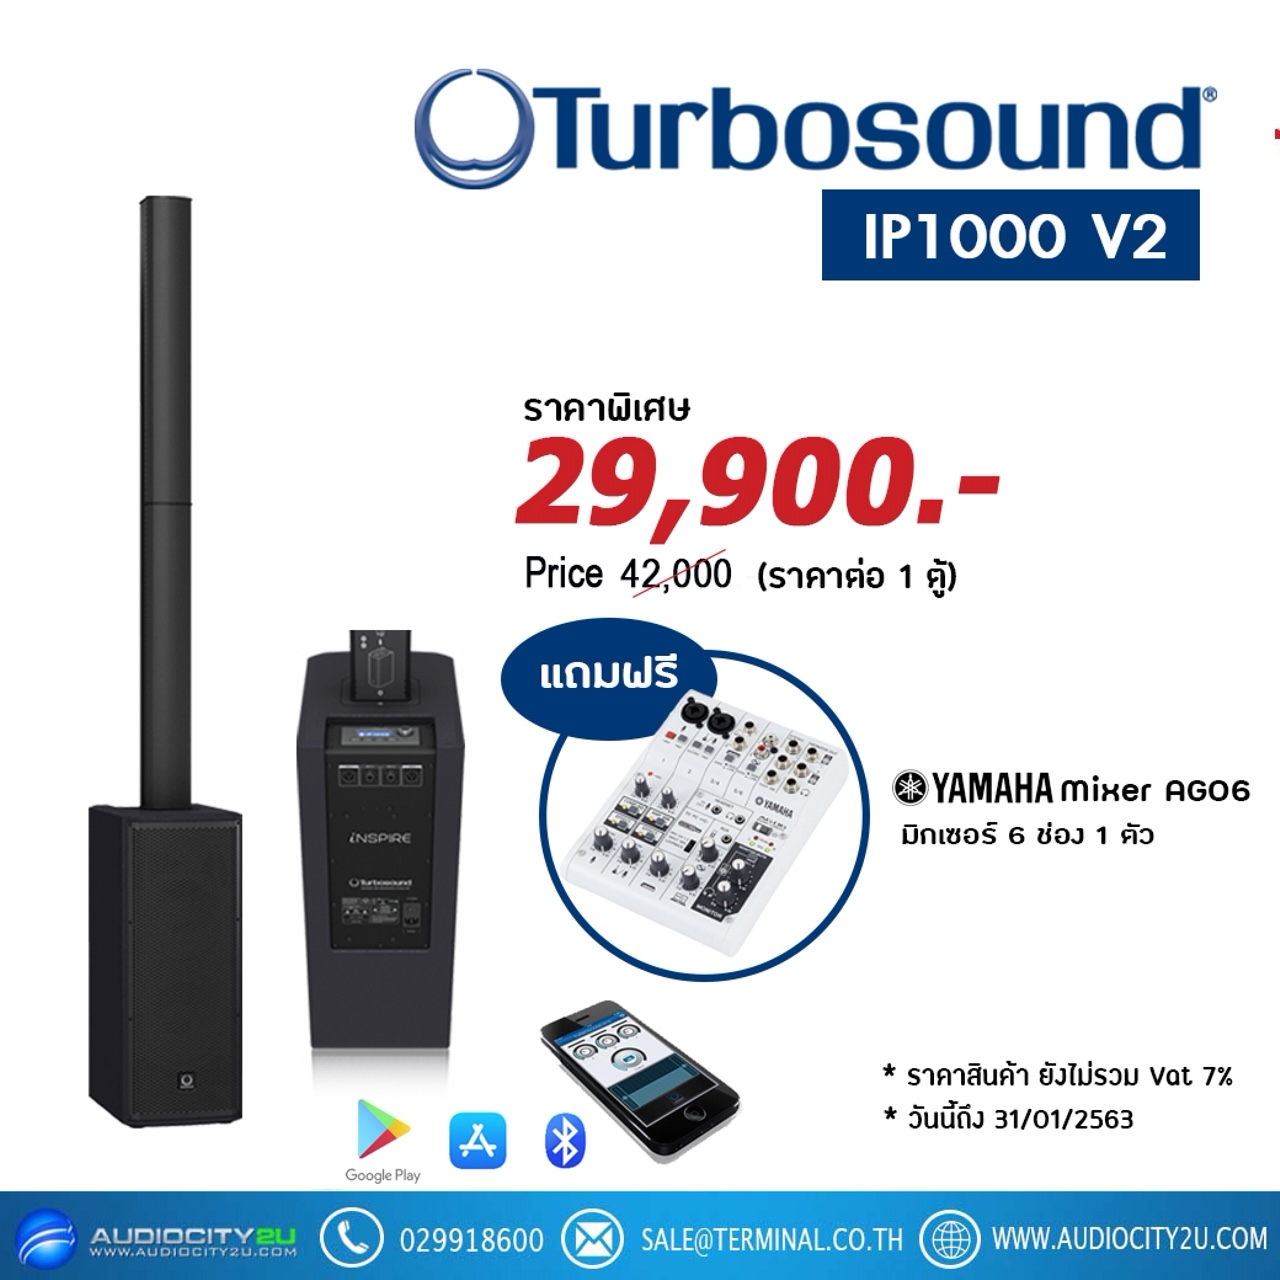 Turbosound iP1000 V2 Free MIX AG06